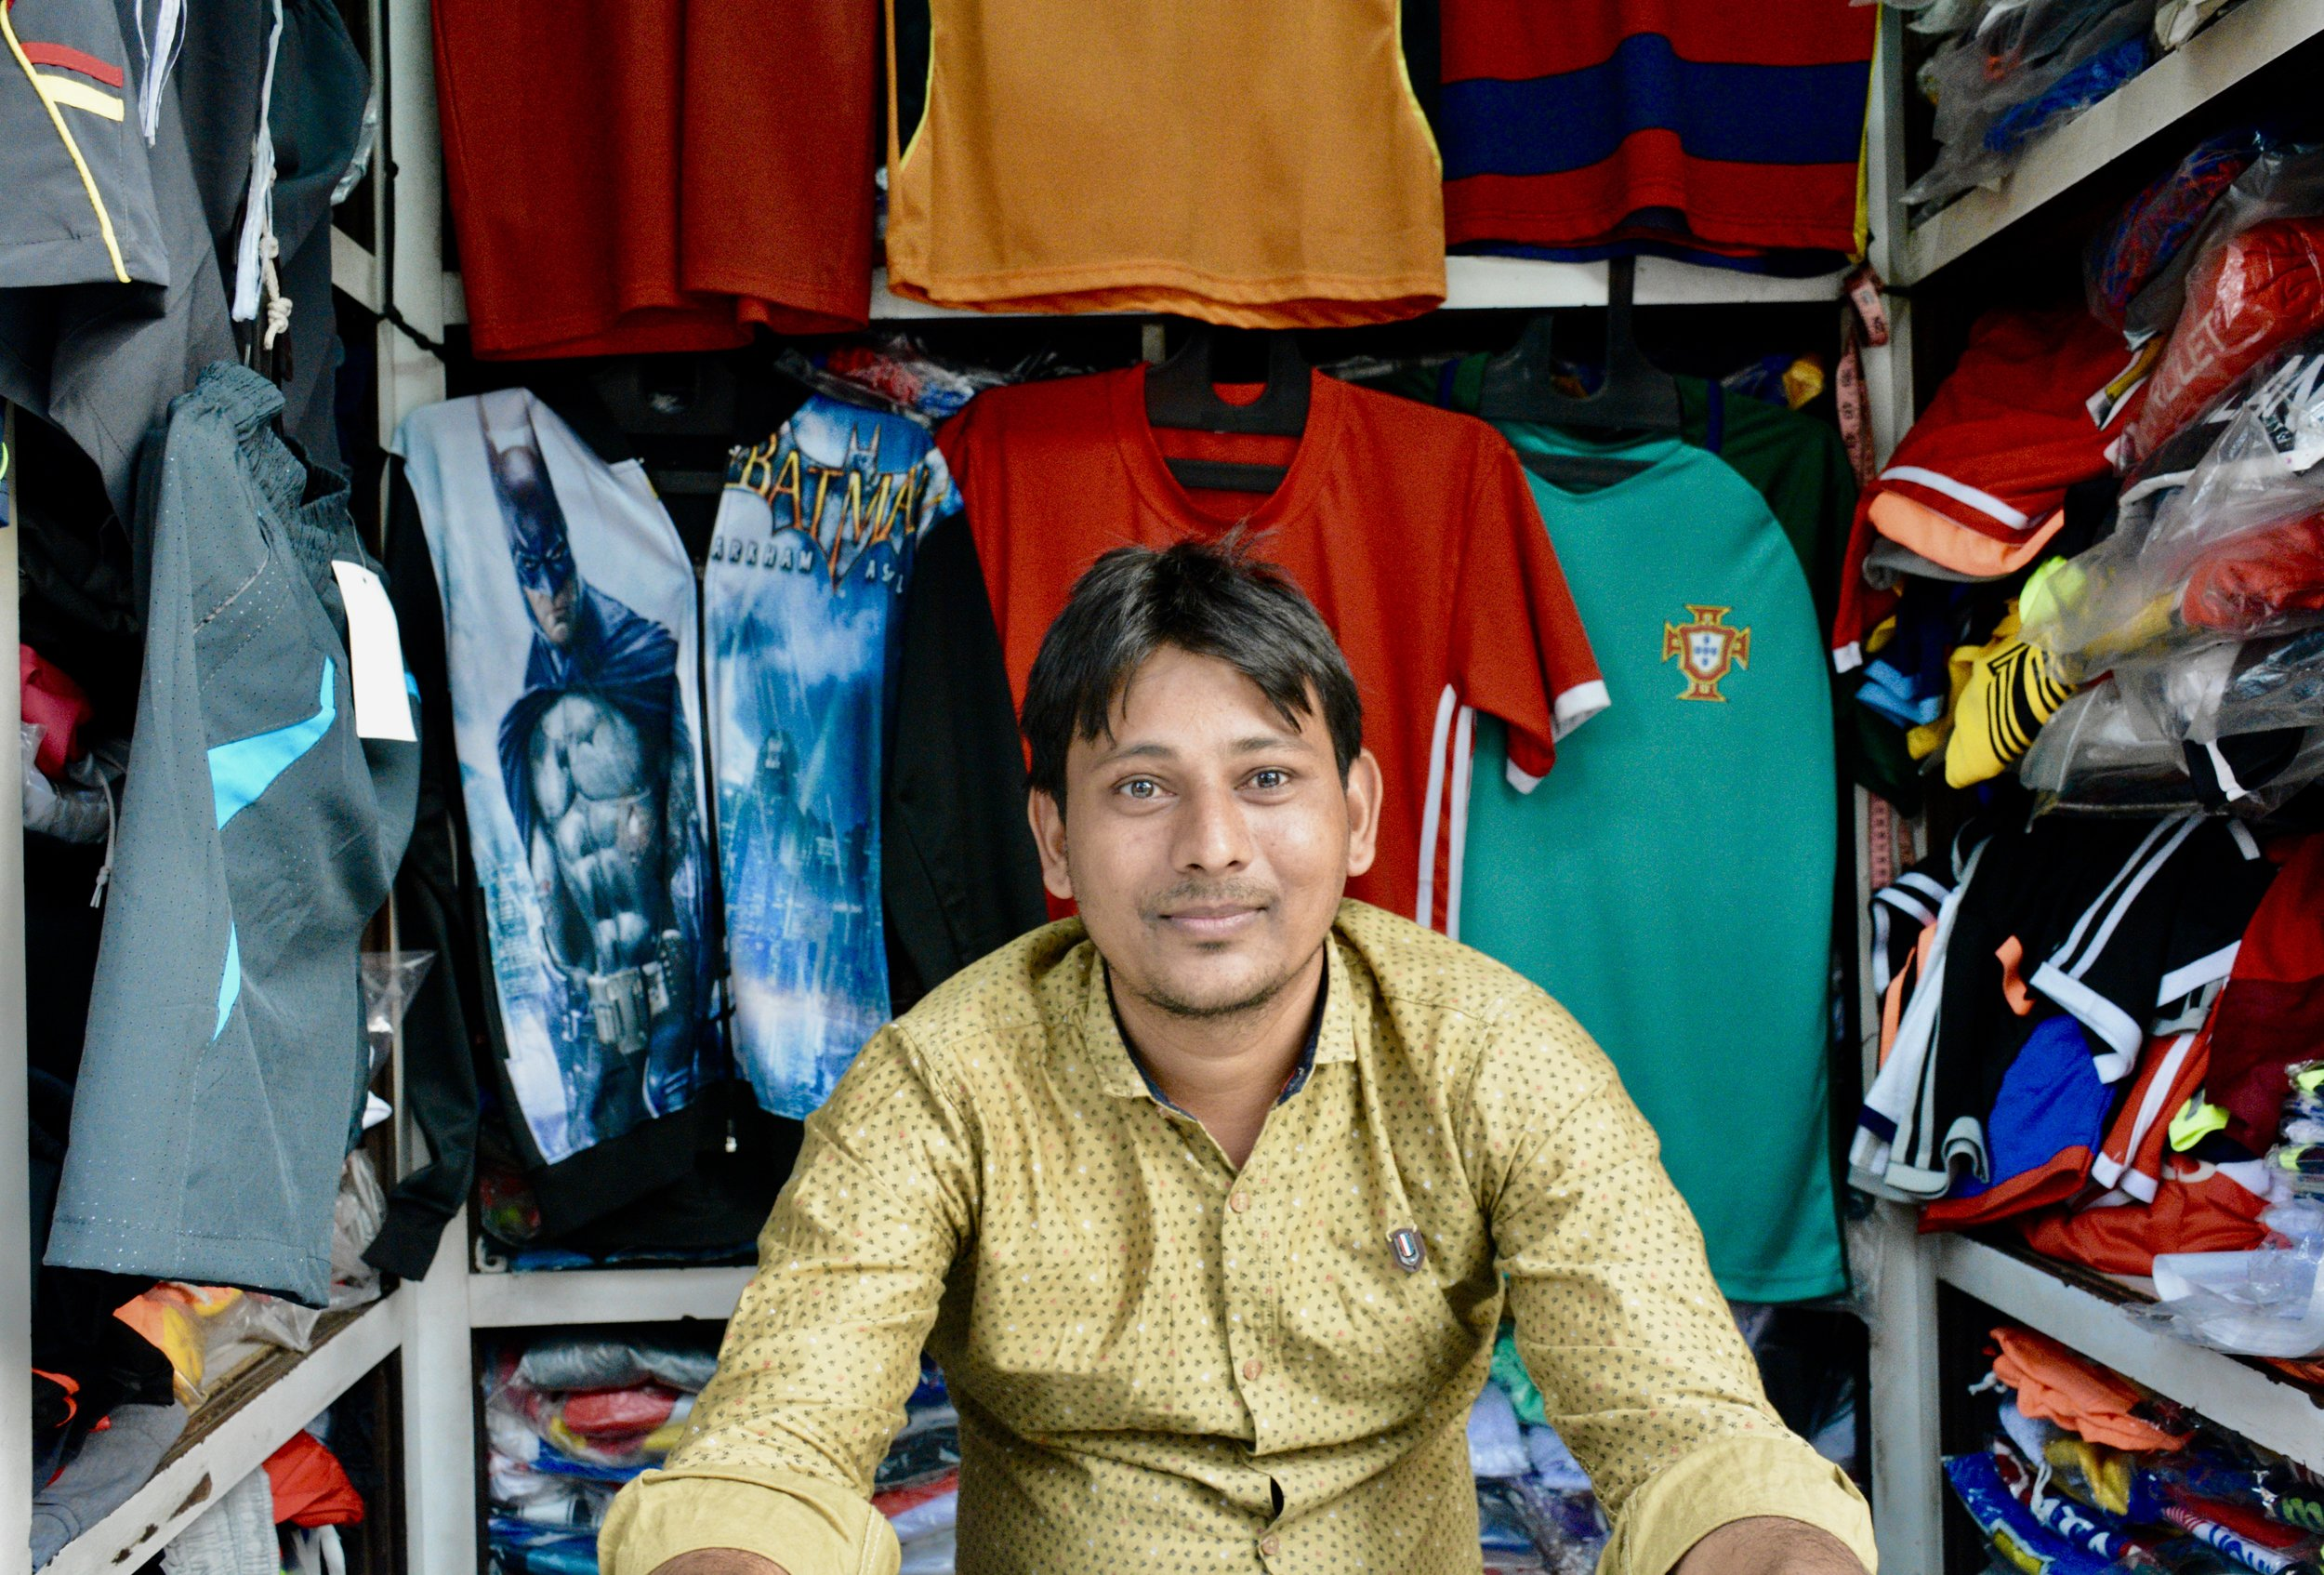 One of the Mumbai group's final interviews involved speaking to a young owner of a sports jersey stand who conducted 100% of his transactions in cash he had to lower some prices as a result of demonetization but does forsee adopting digital payment systems in the near future.